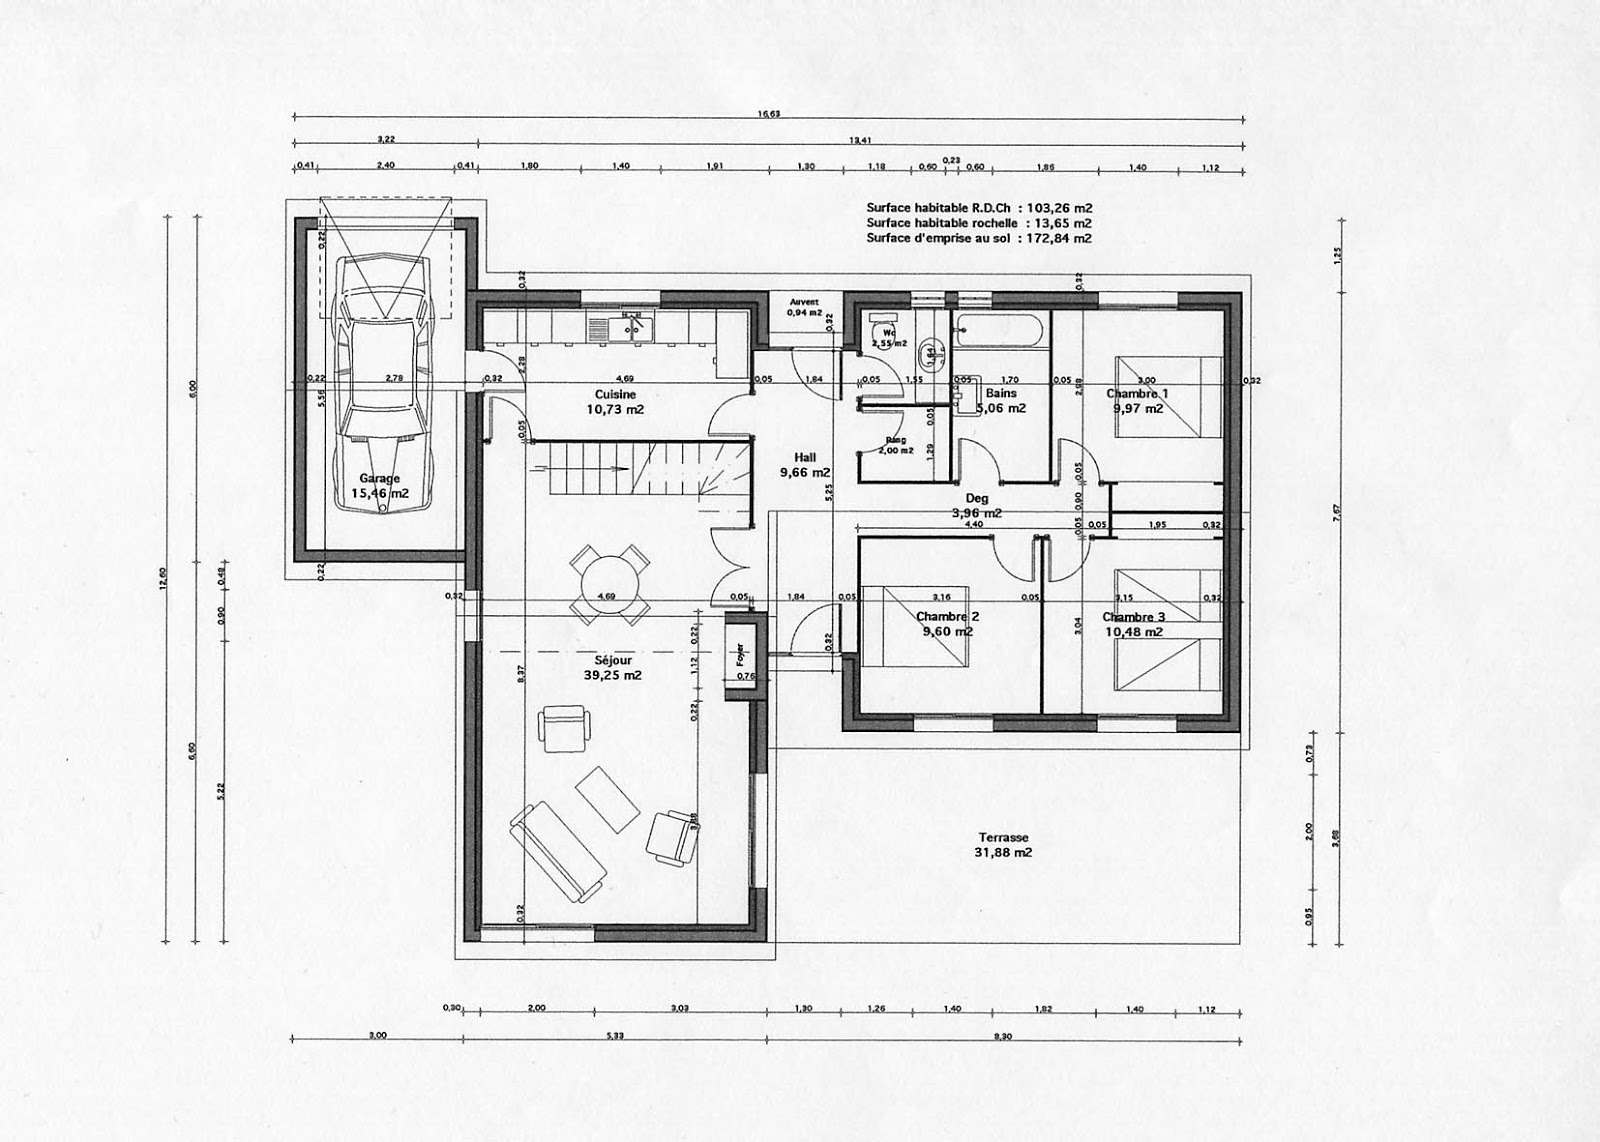 Plans de maison 2 book batiment architecture - Plan de maison architecte ...